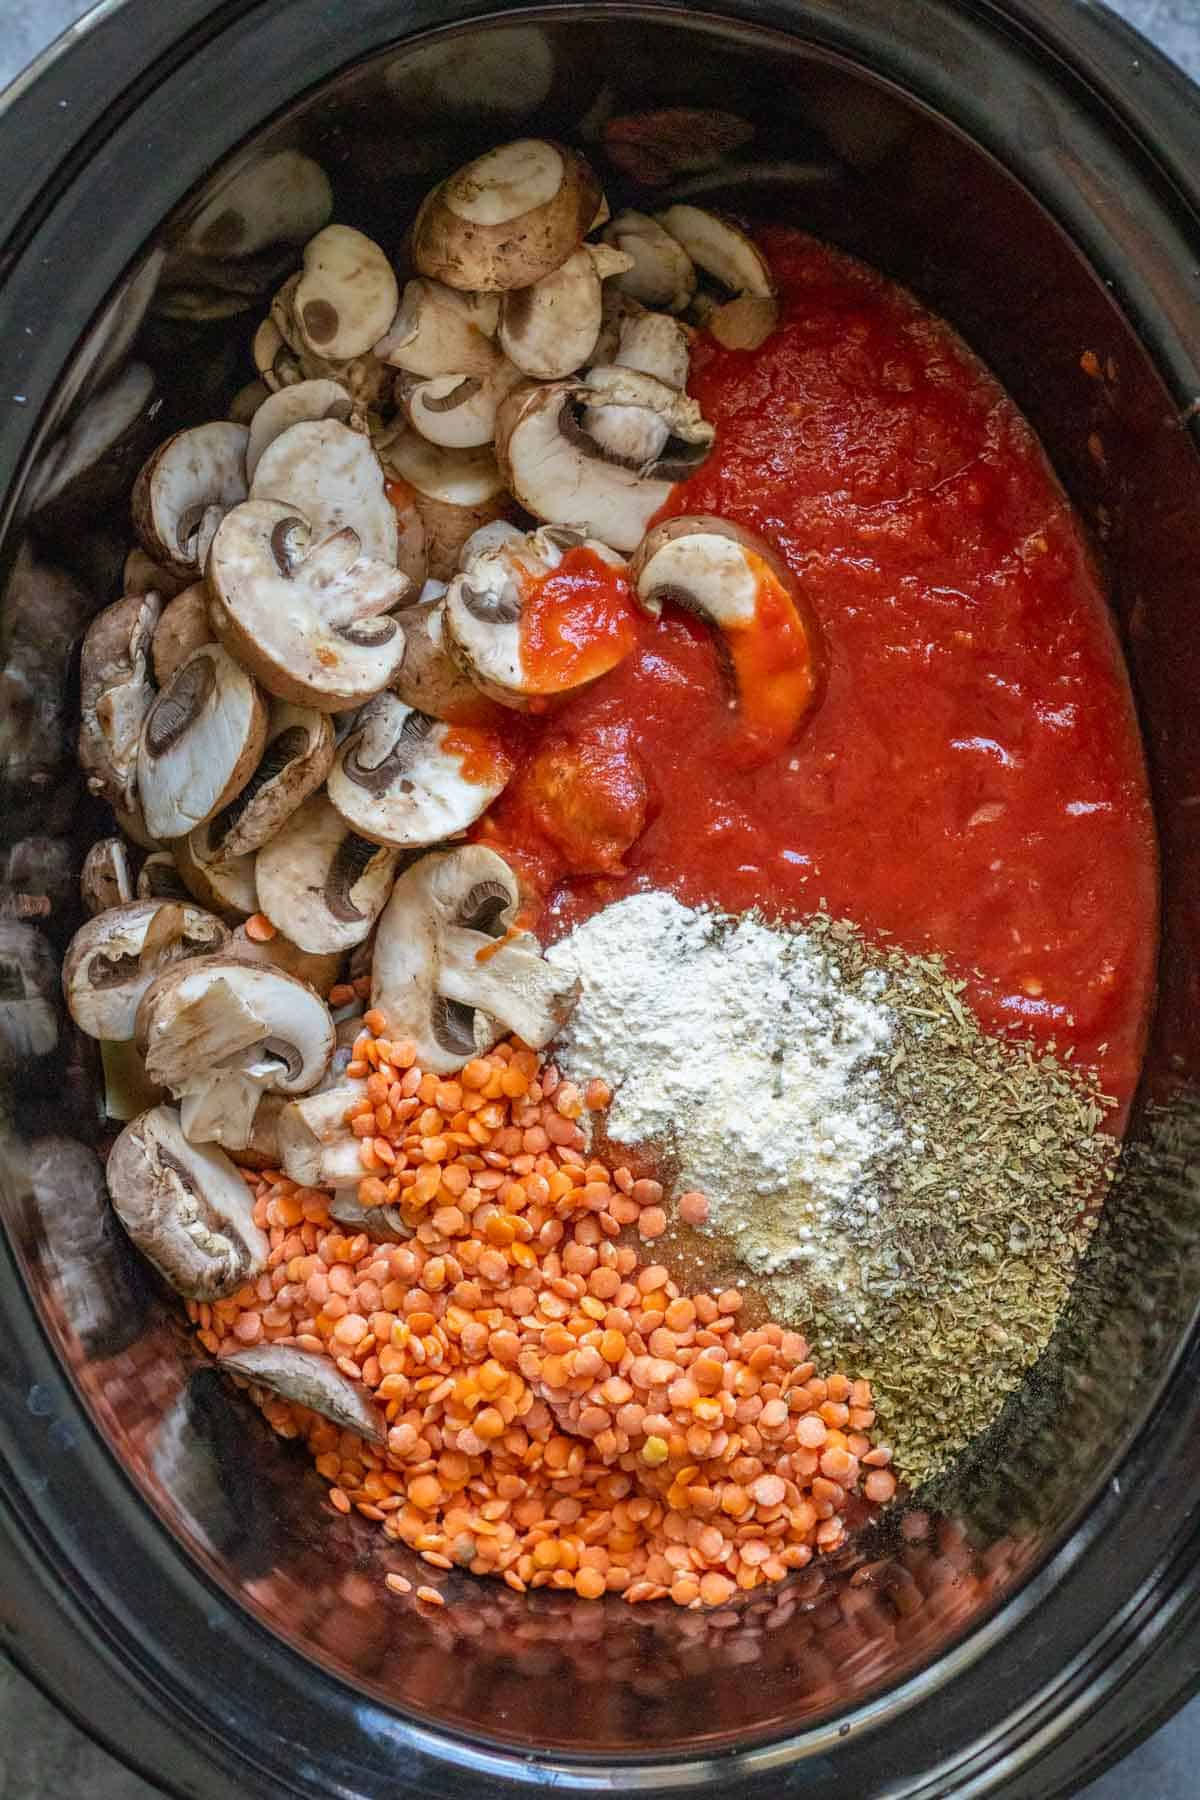 Soup Ingredients layered in crockpot.